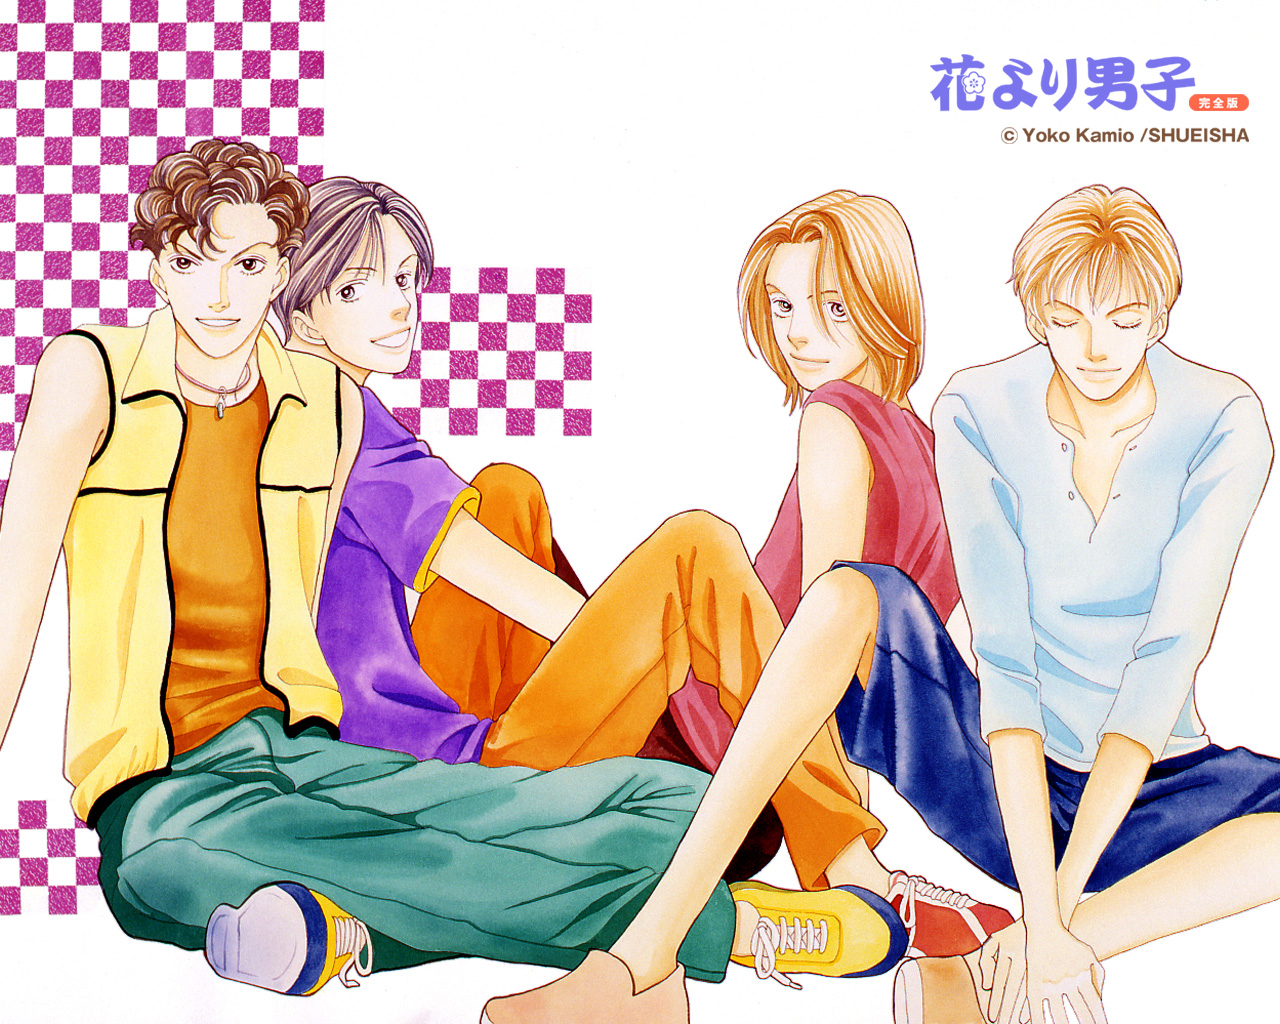 Hana Yori Dango 花より男子 Images F4 Hd Wallpaper And Background